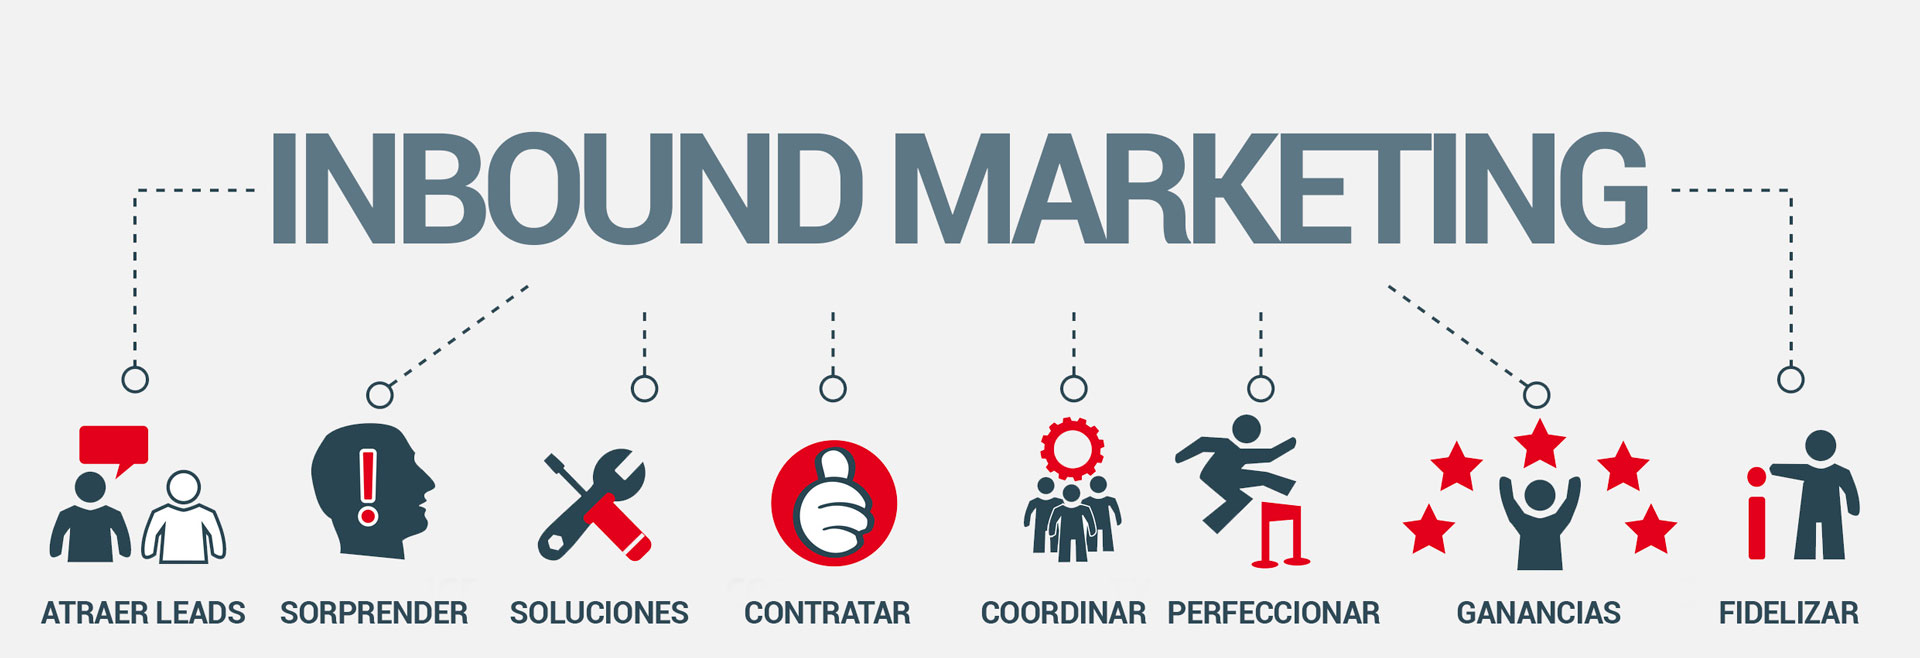 inbound-marketing-profesional